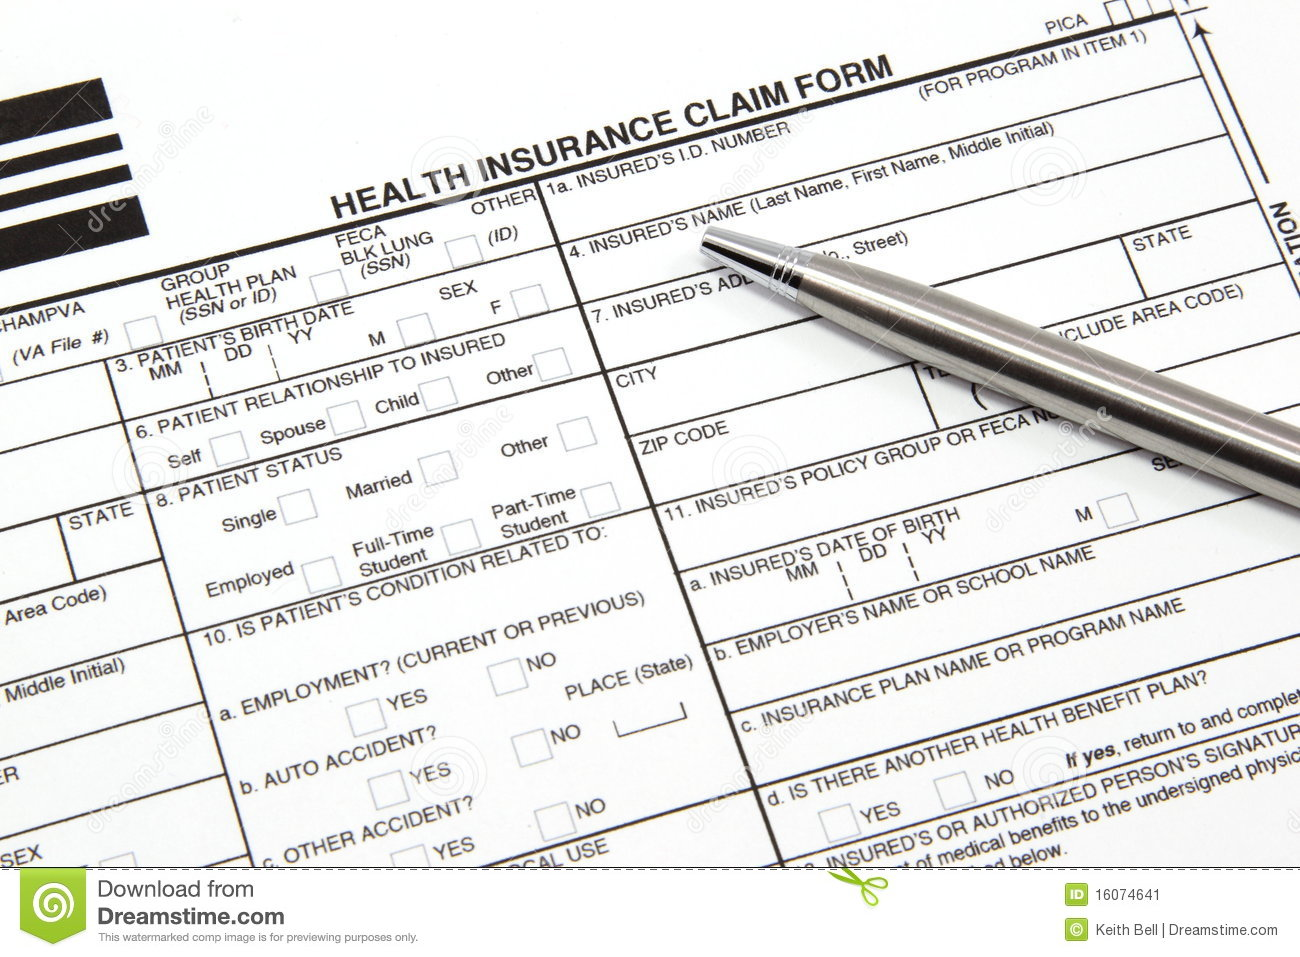 Health Insurance Claim Form With Silver Pen Stock Image